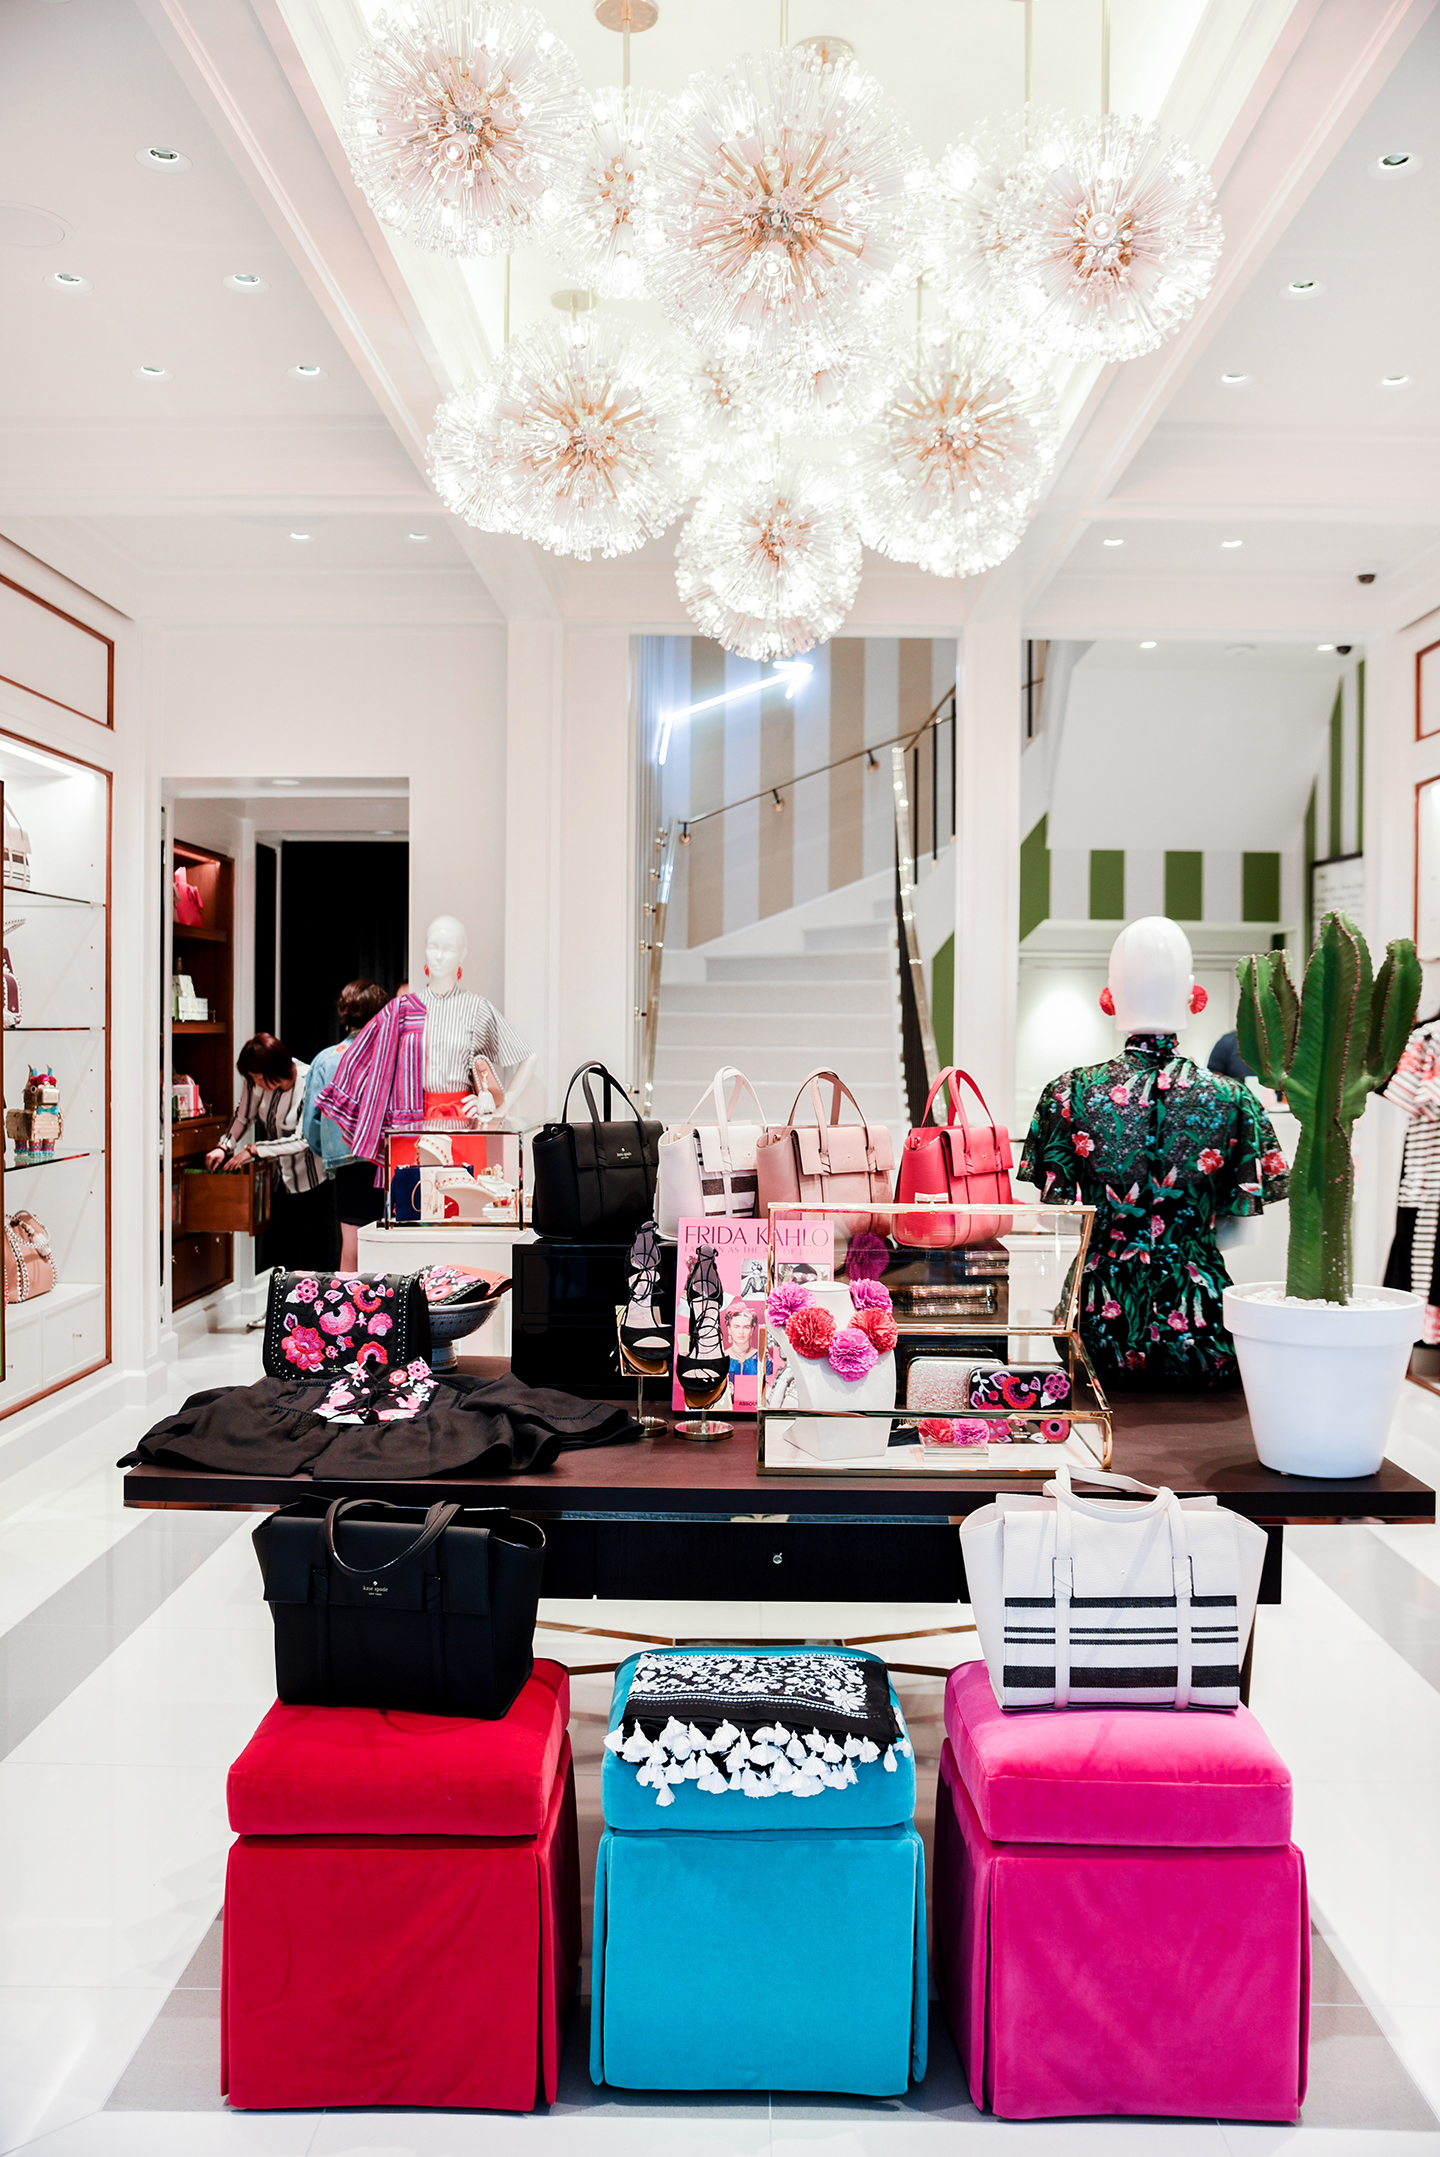 Blog-Mode-And-The-City-Lifestyle-Kate-Spade-Paris-418-rue-saint-honore-10